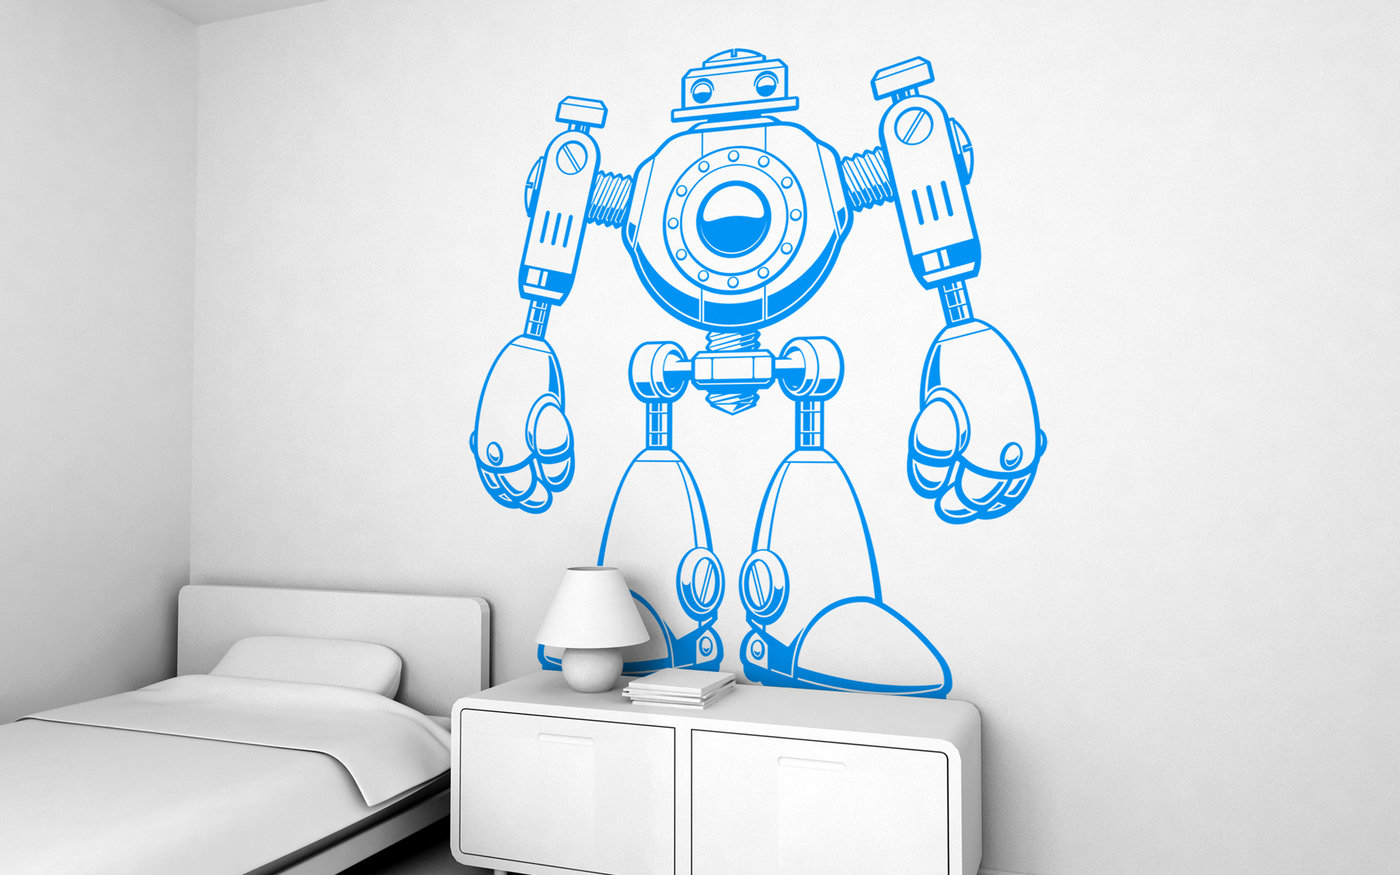 Giant kids wall decals by e glue studio at coroflot jojo the robot giant wall sticker for baby nursery or kids room amipublicfo Gallery